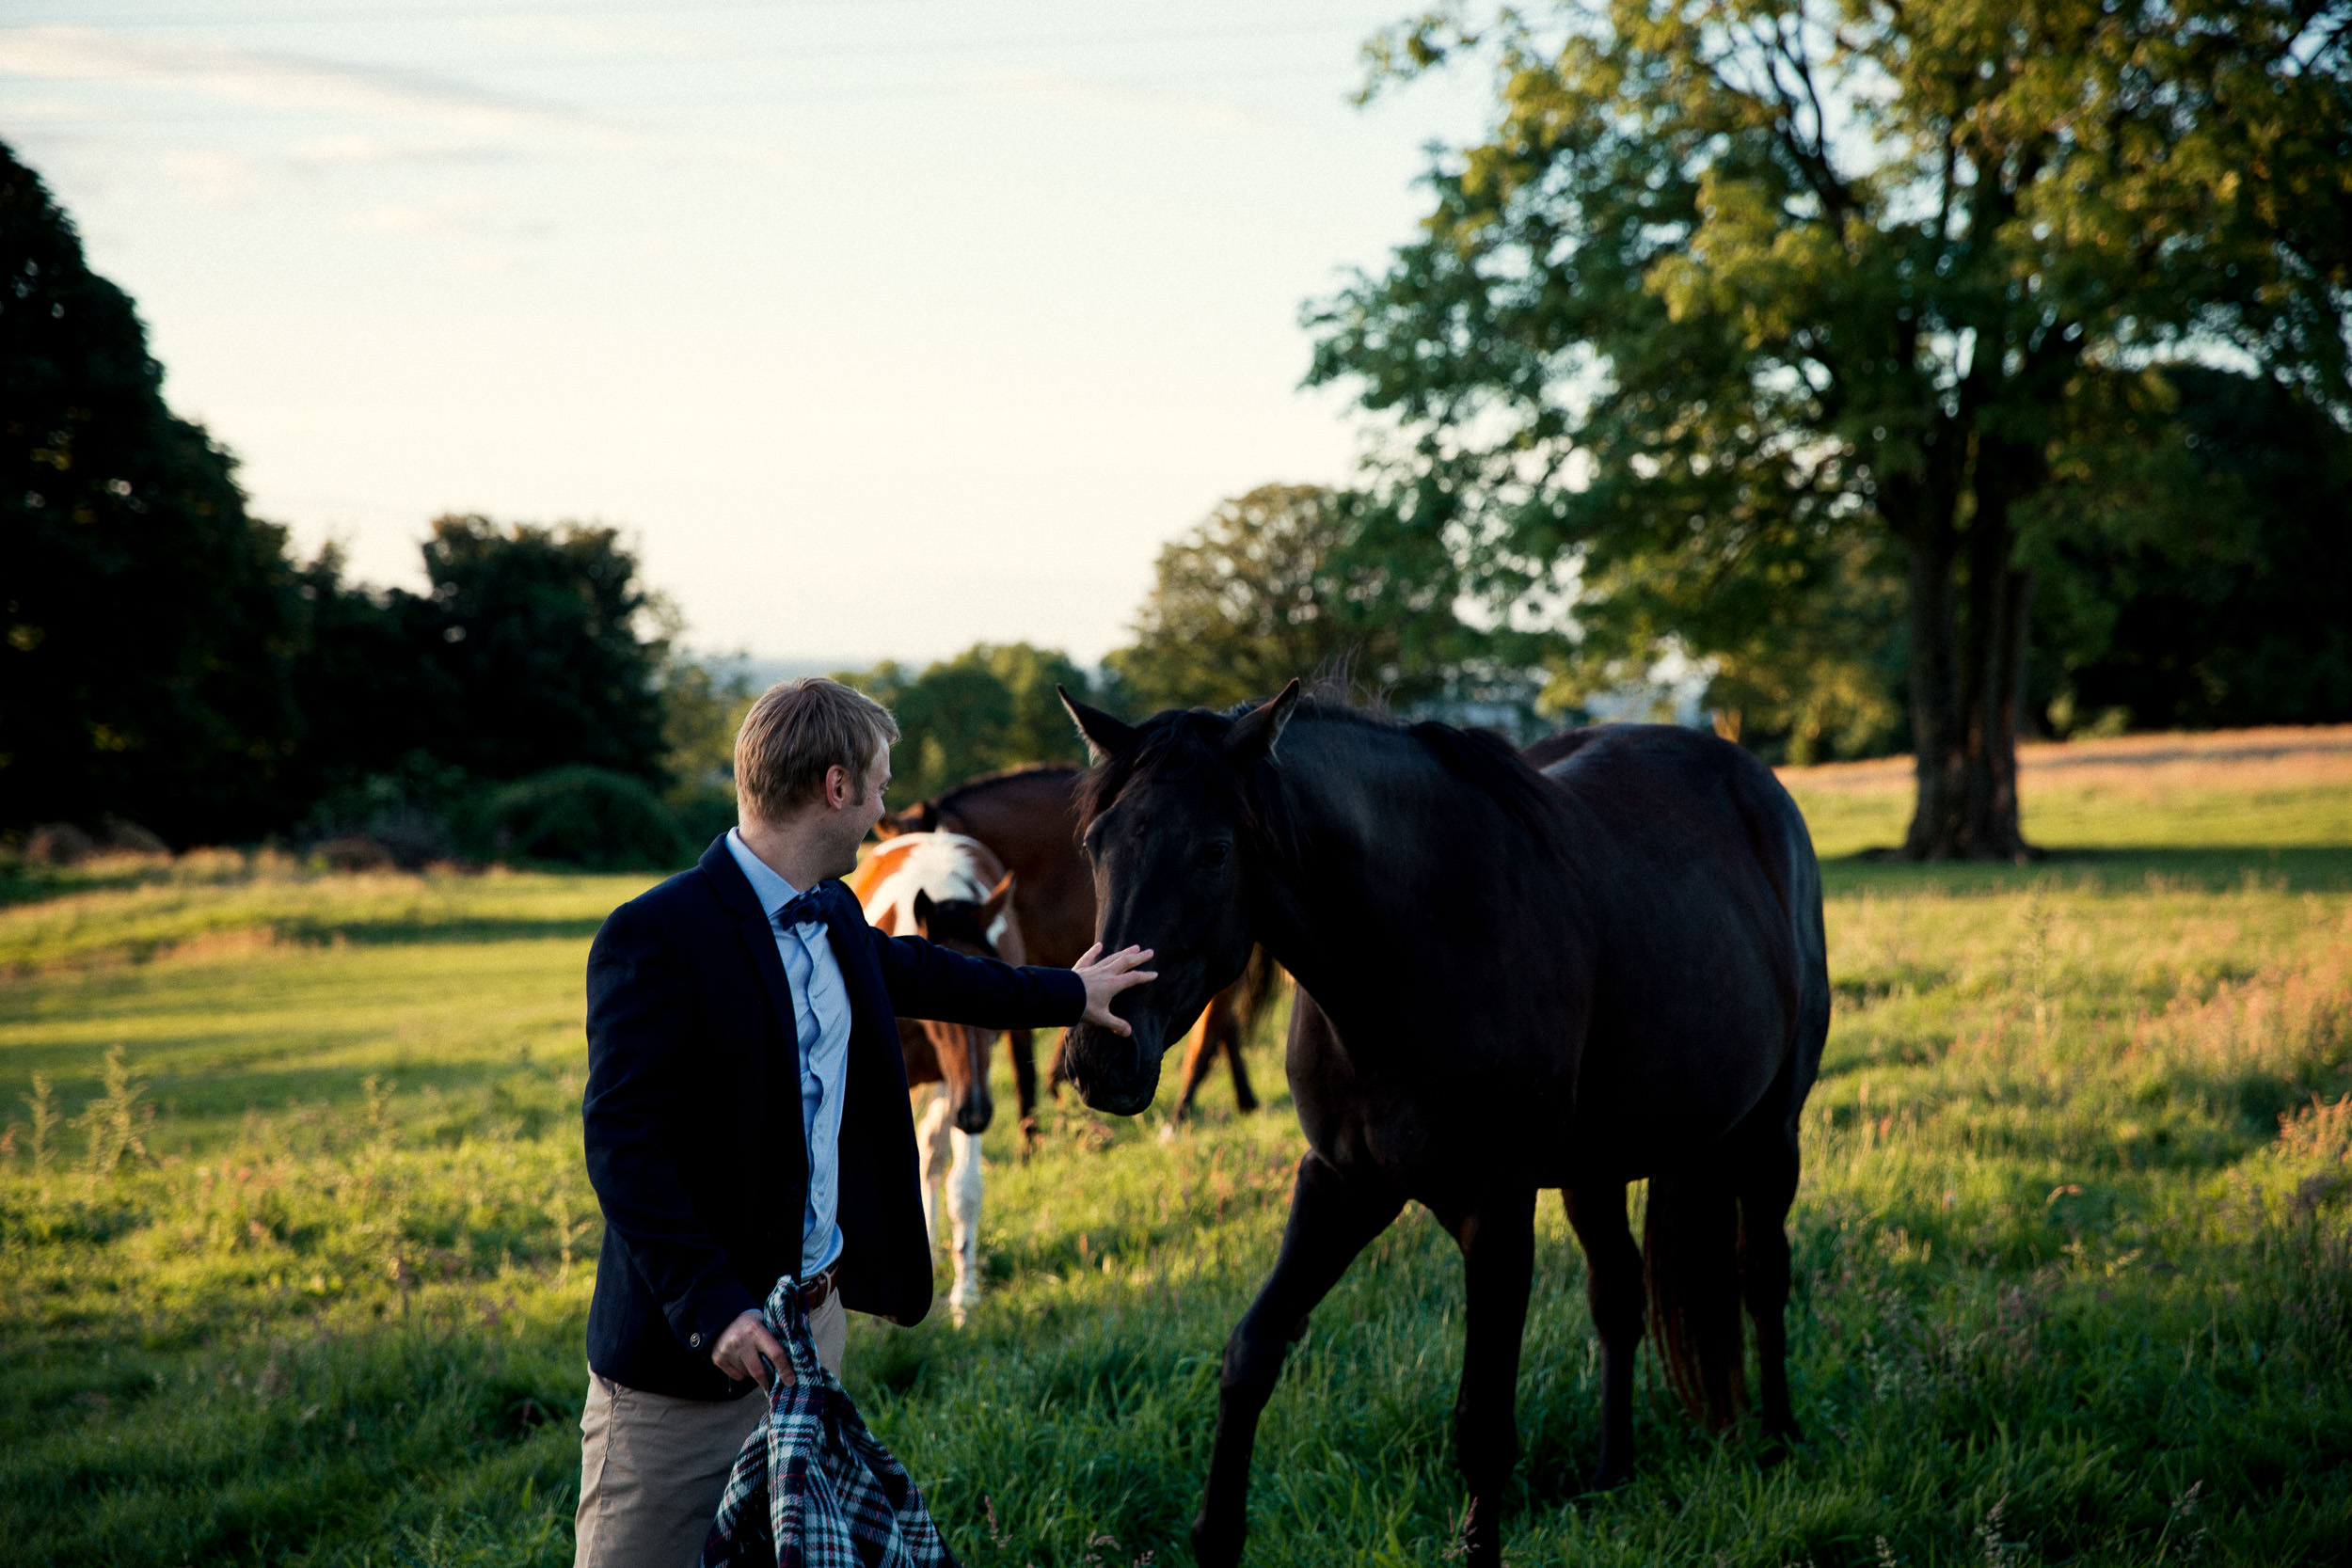 clairebyrnephotography-wedding-photography-ireland-engagement-sunset-farm-horses-58.jpg